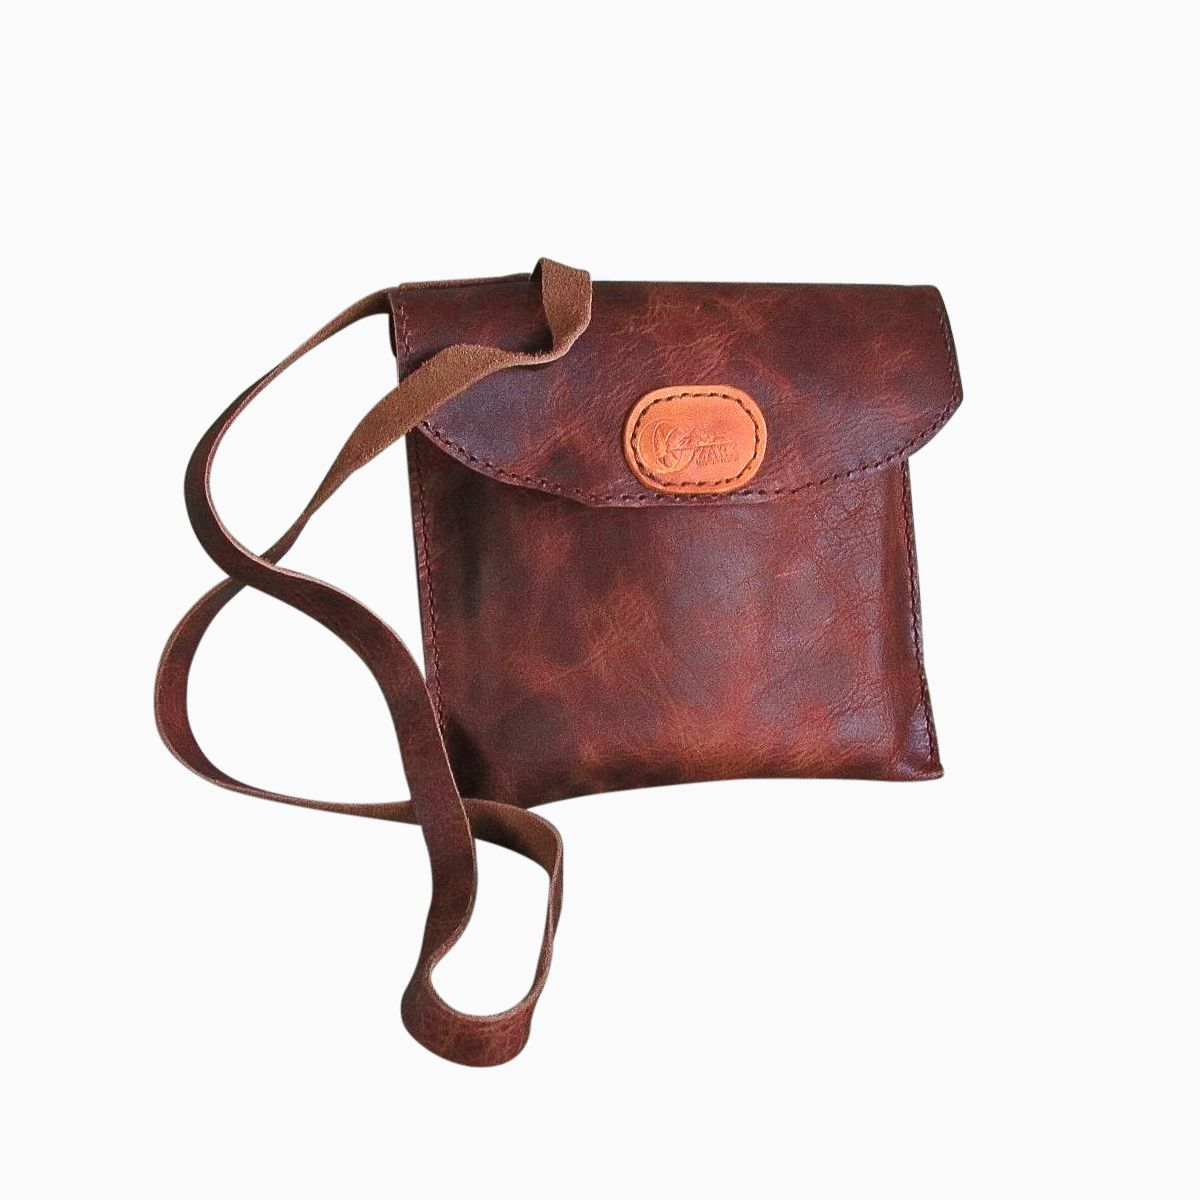 Buy A Hand Made Small Leather Travel Bag Cross Body Design